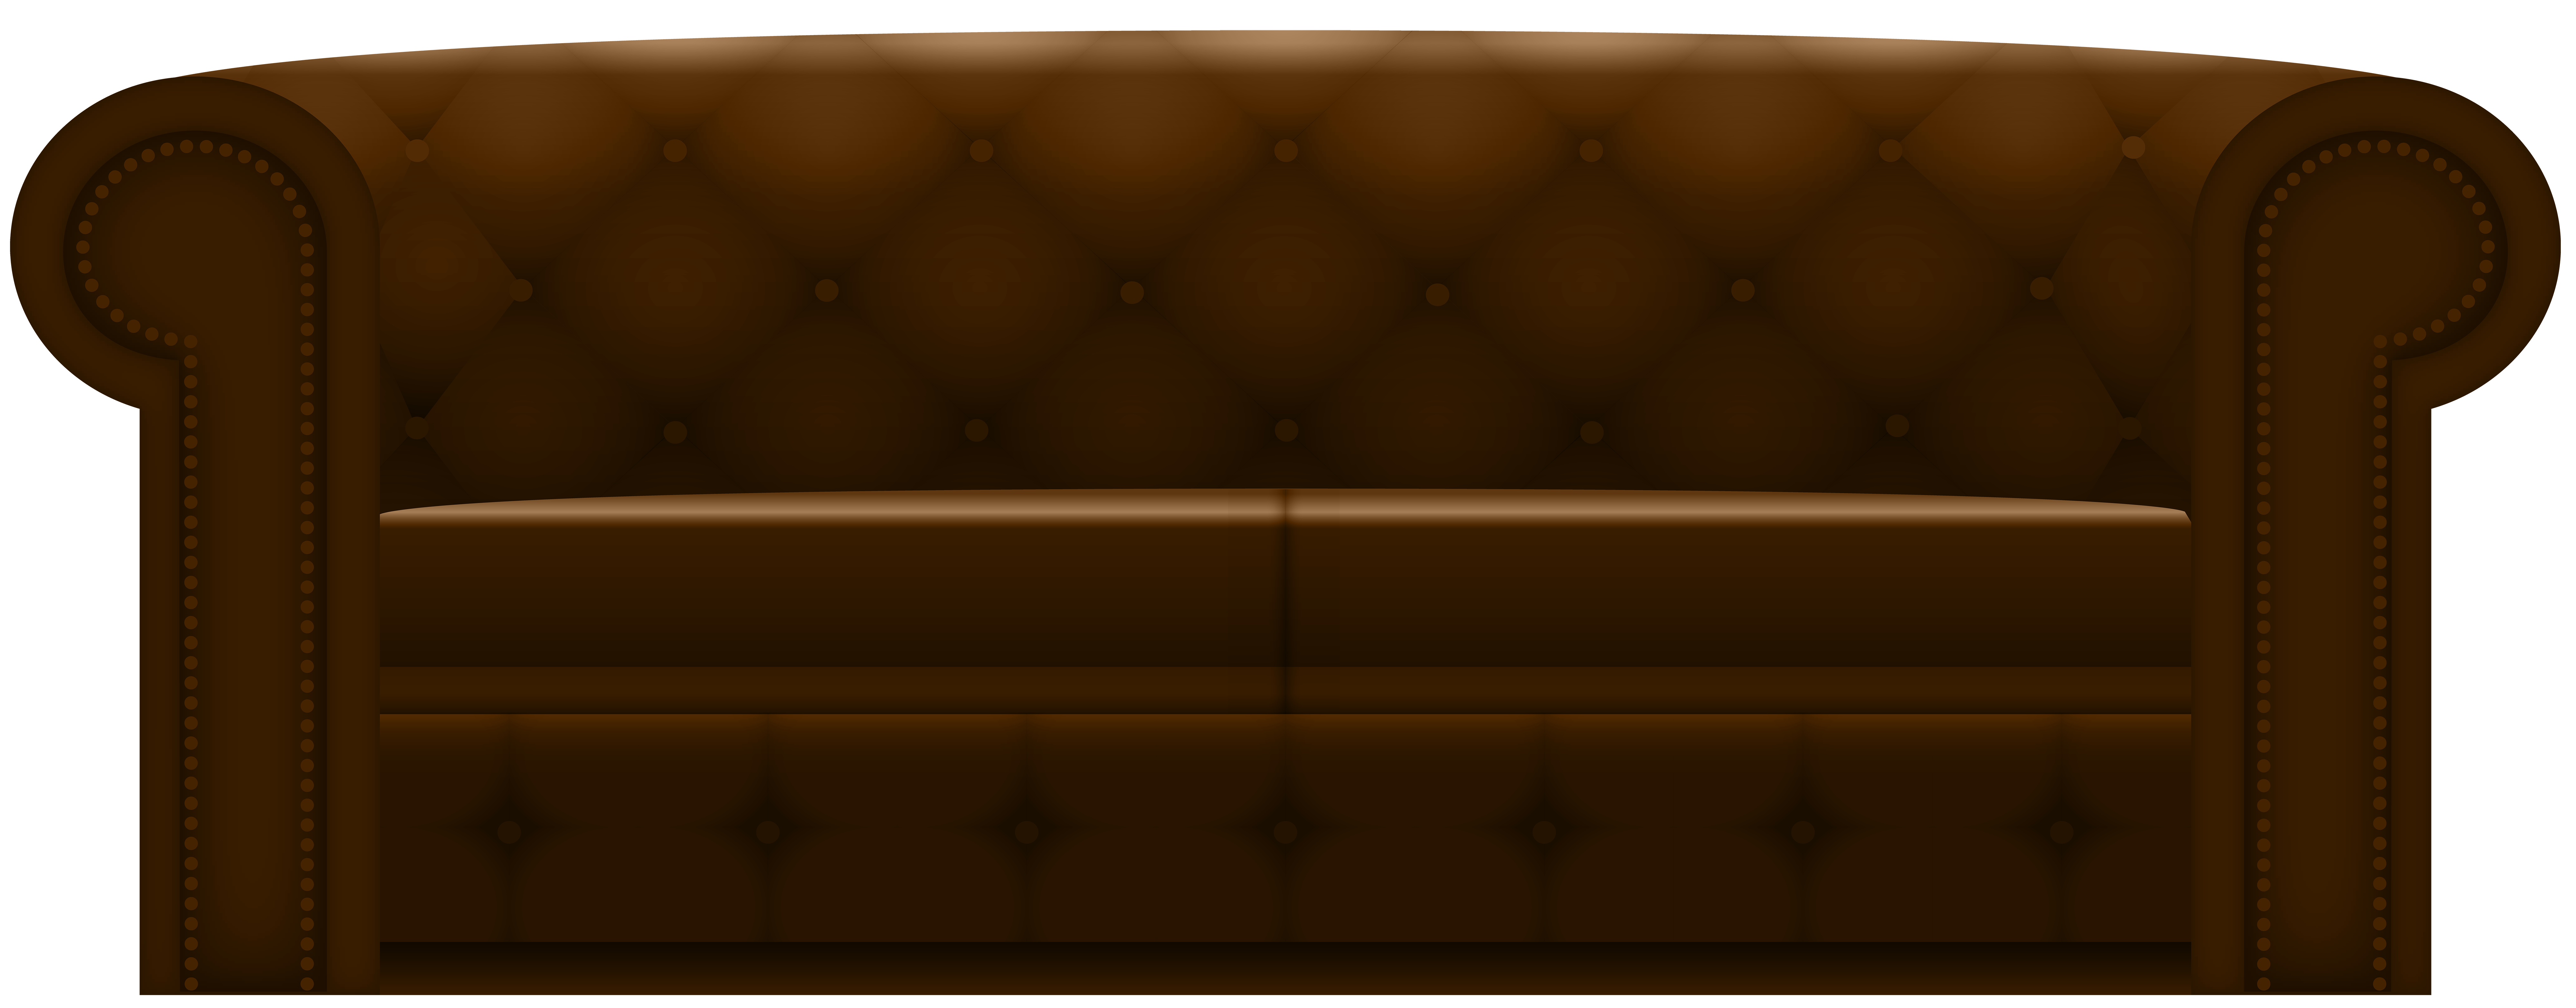 Sofa transparent brown. Couch png clip art